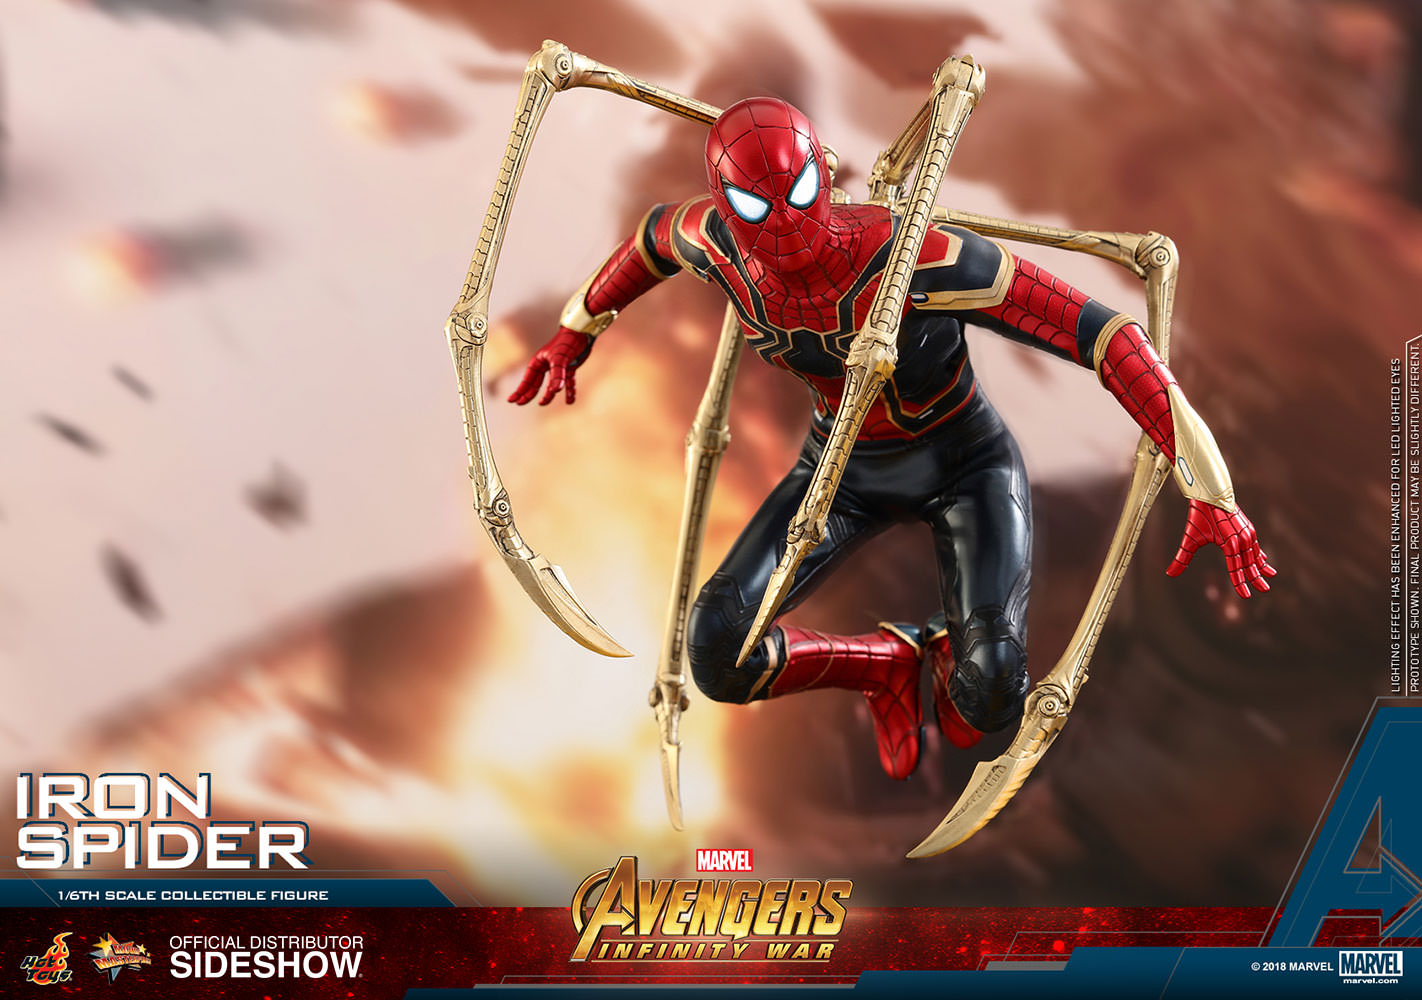 marvel-avengers-infinity-war-iron-spider-sixth-scale-hot-toys-903471-17